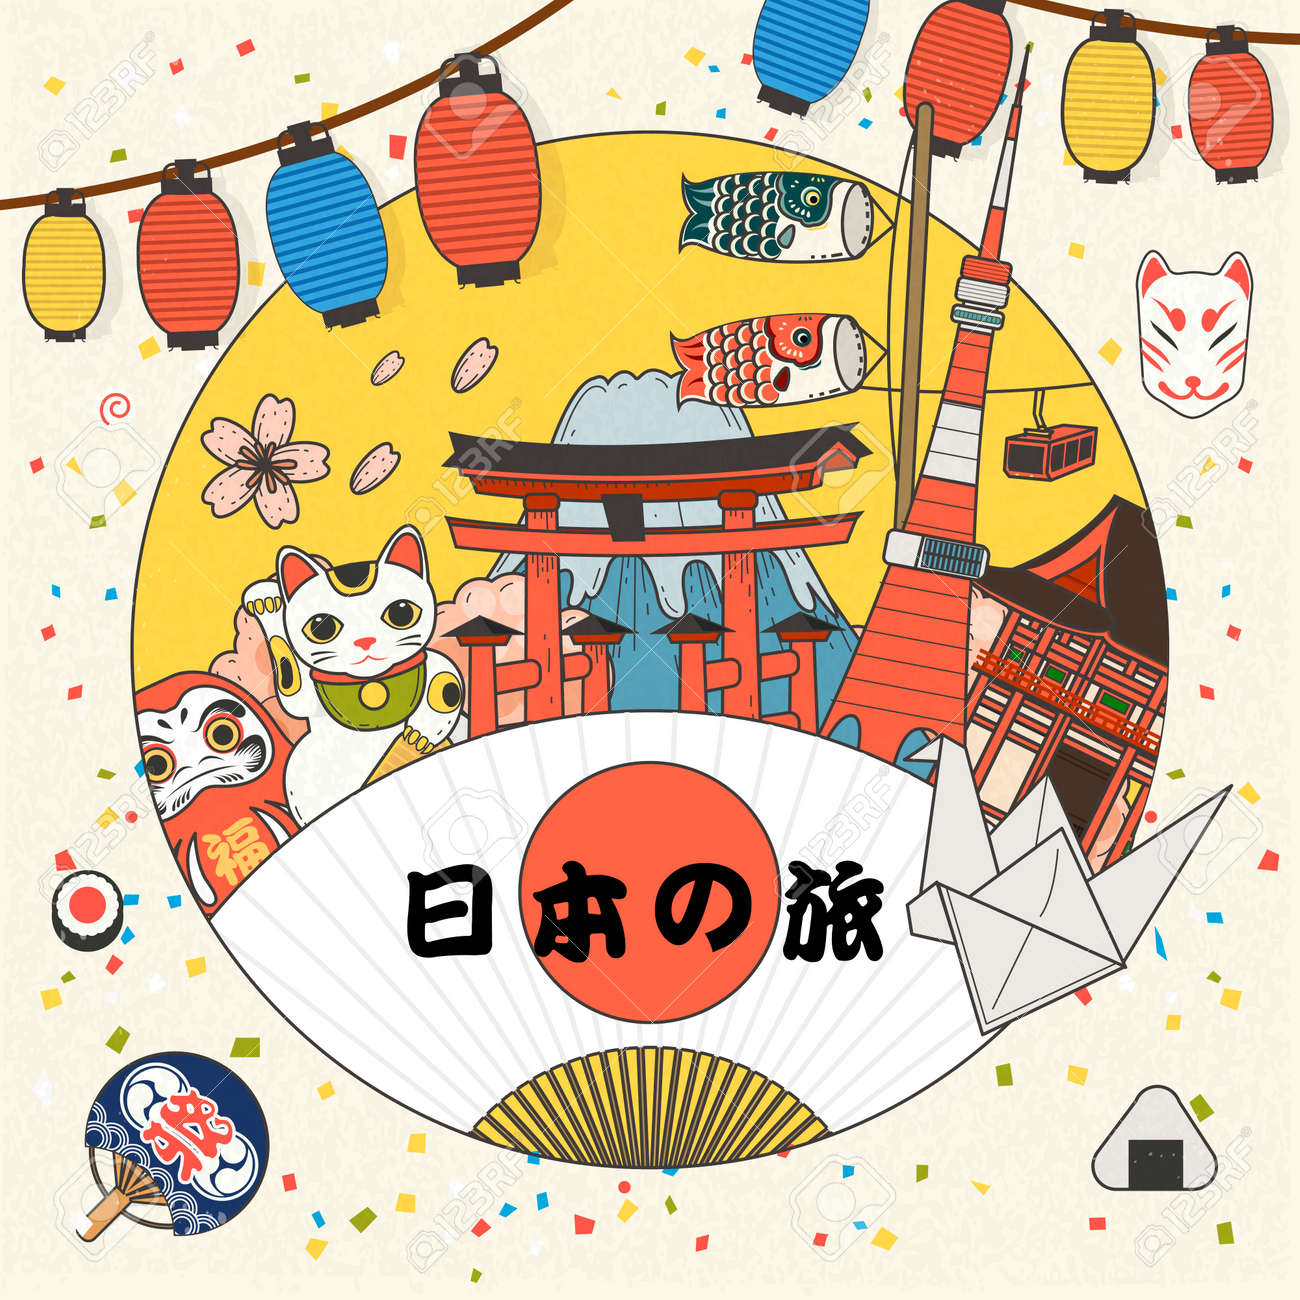 Poster design elements - Colorful Japan Tourism Poster Design With Cultural Elements Japan Travel In Japanese On The Fan